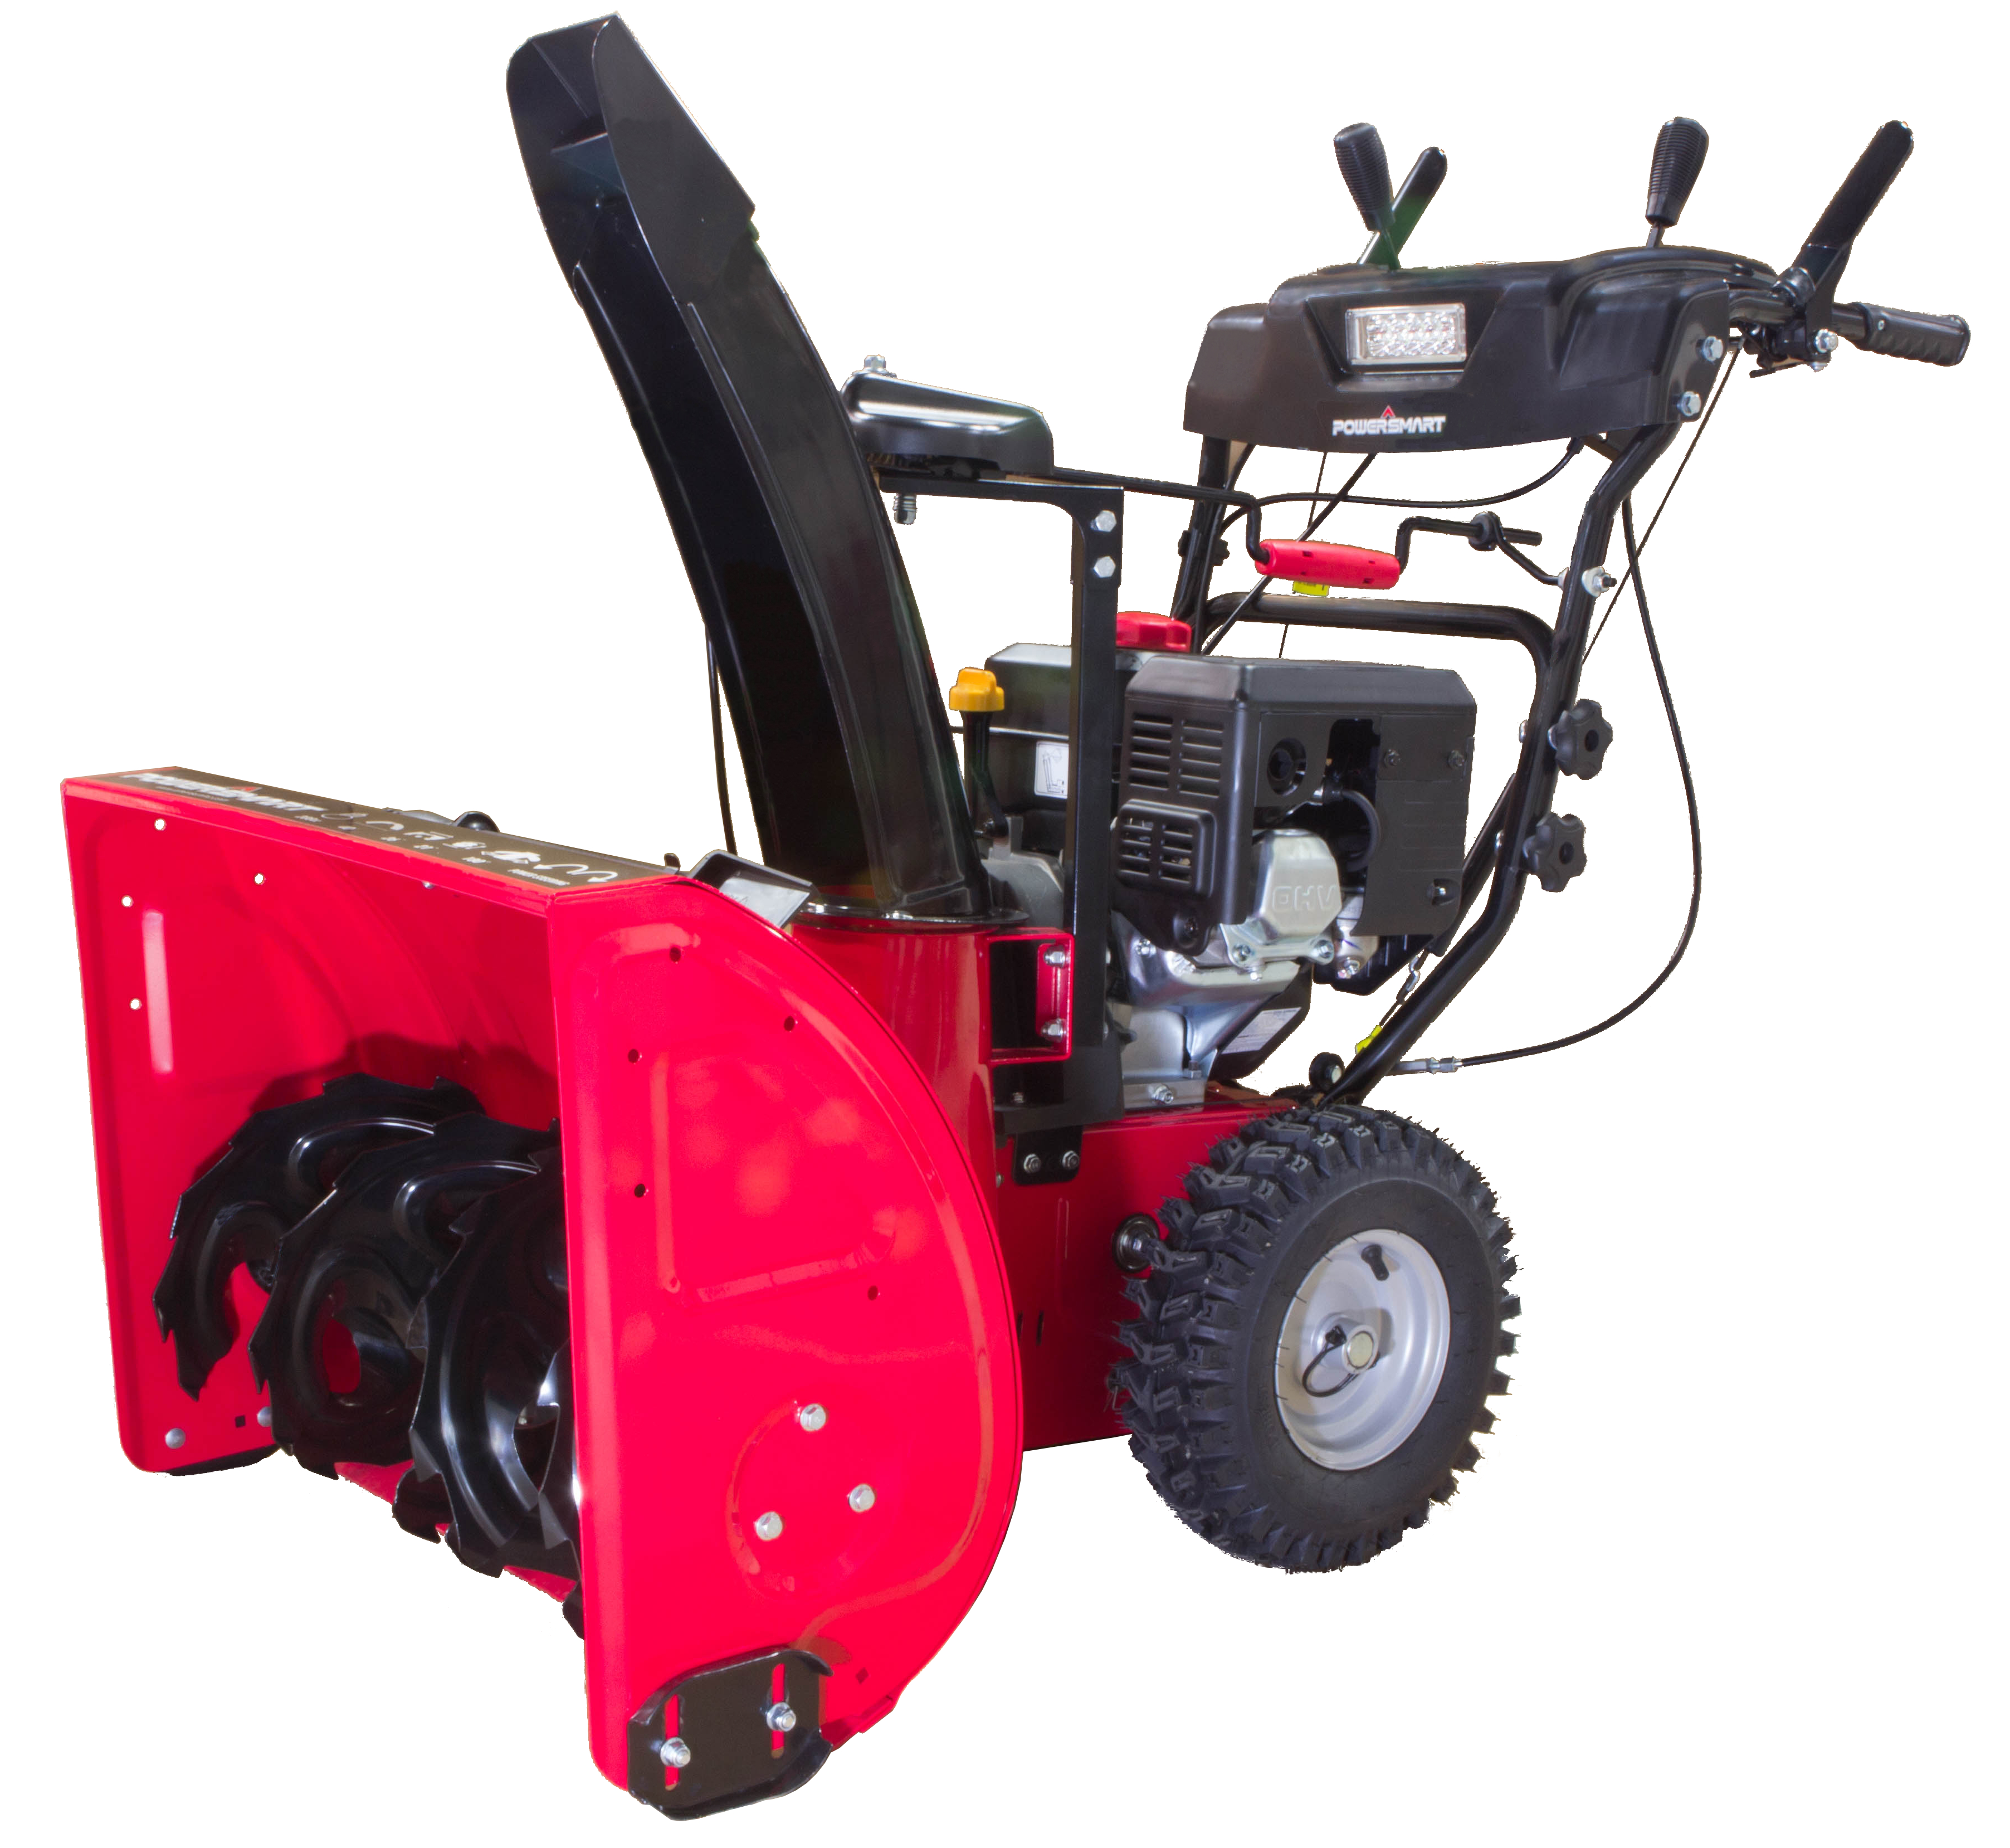 PowerSmart DB7126PA 26 in. 212cc 2-Stage Electric Start Gas Snow Blower with Power Assist Turning and... by Amerisun Inc.